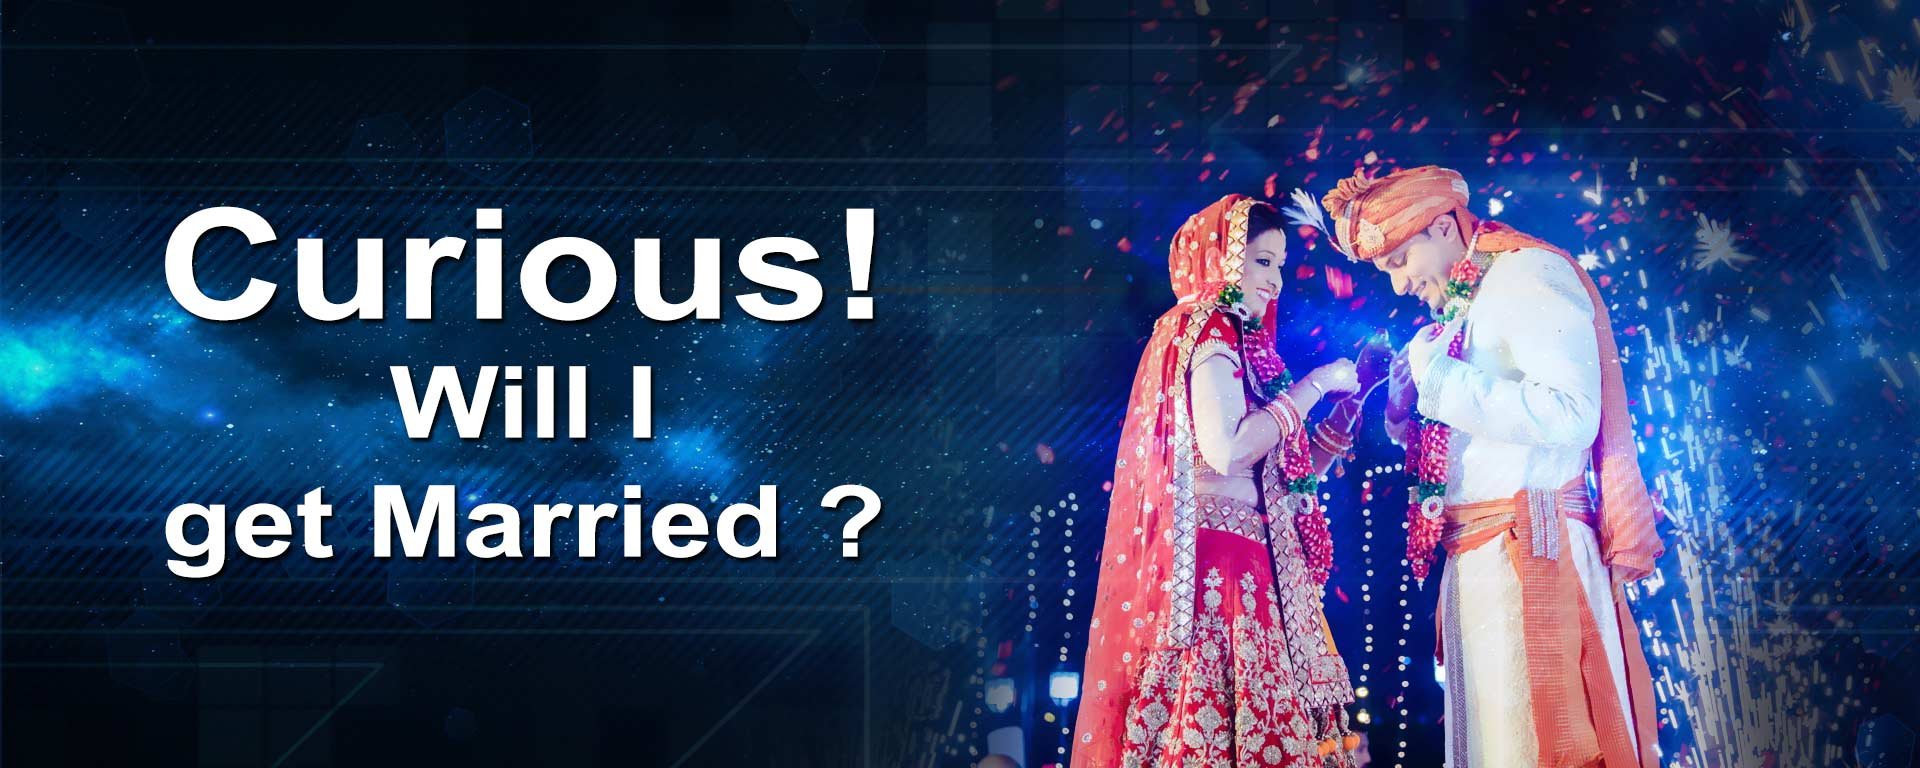 Curious! will get Married ?